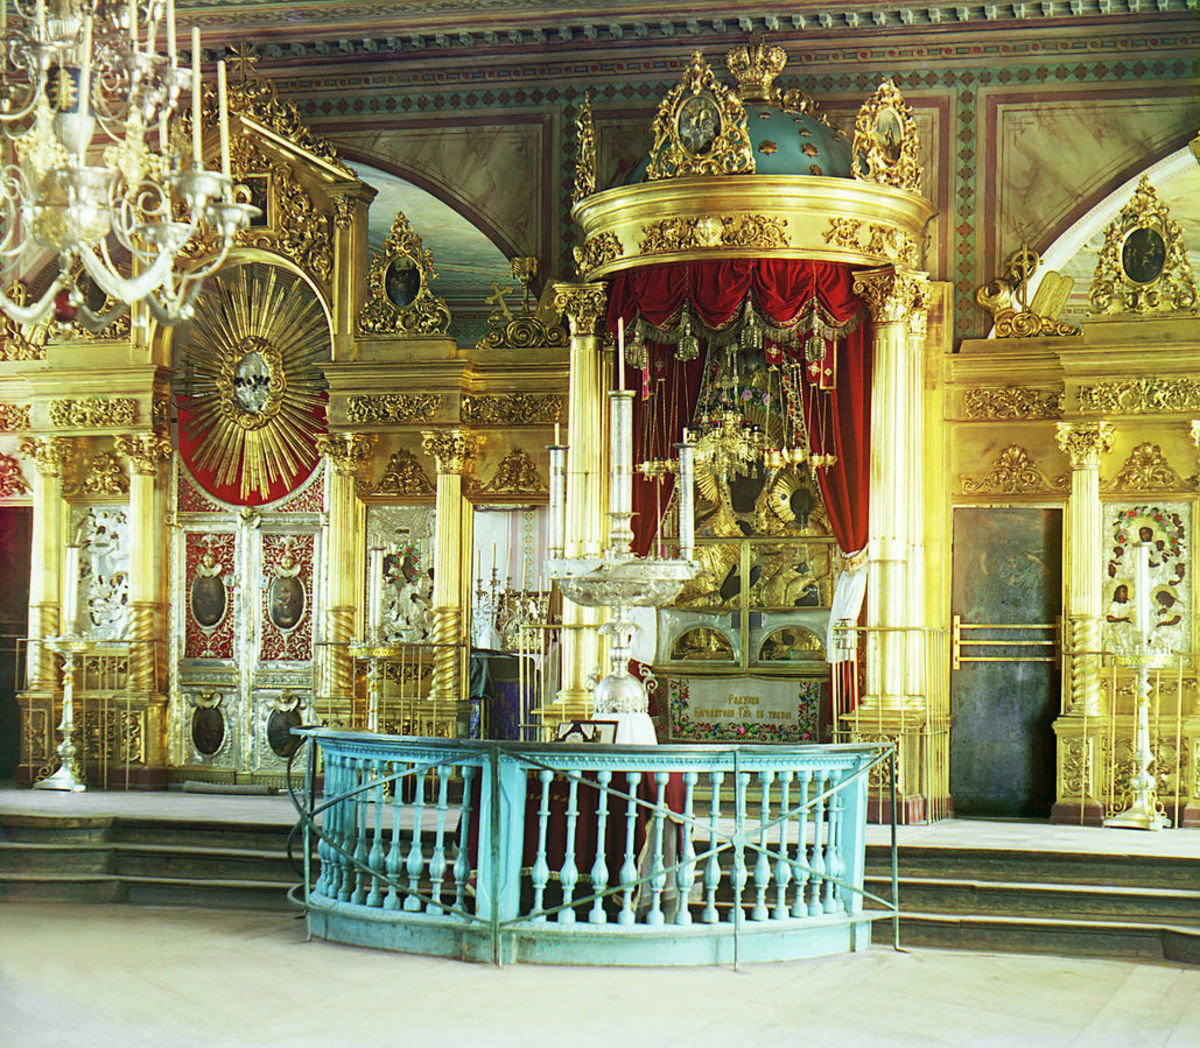 Bema in an Eastern Orthodox church, with three steps leading up to it. Assumption Cathedral in Smolensk, western Russia